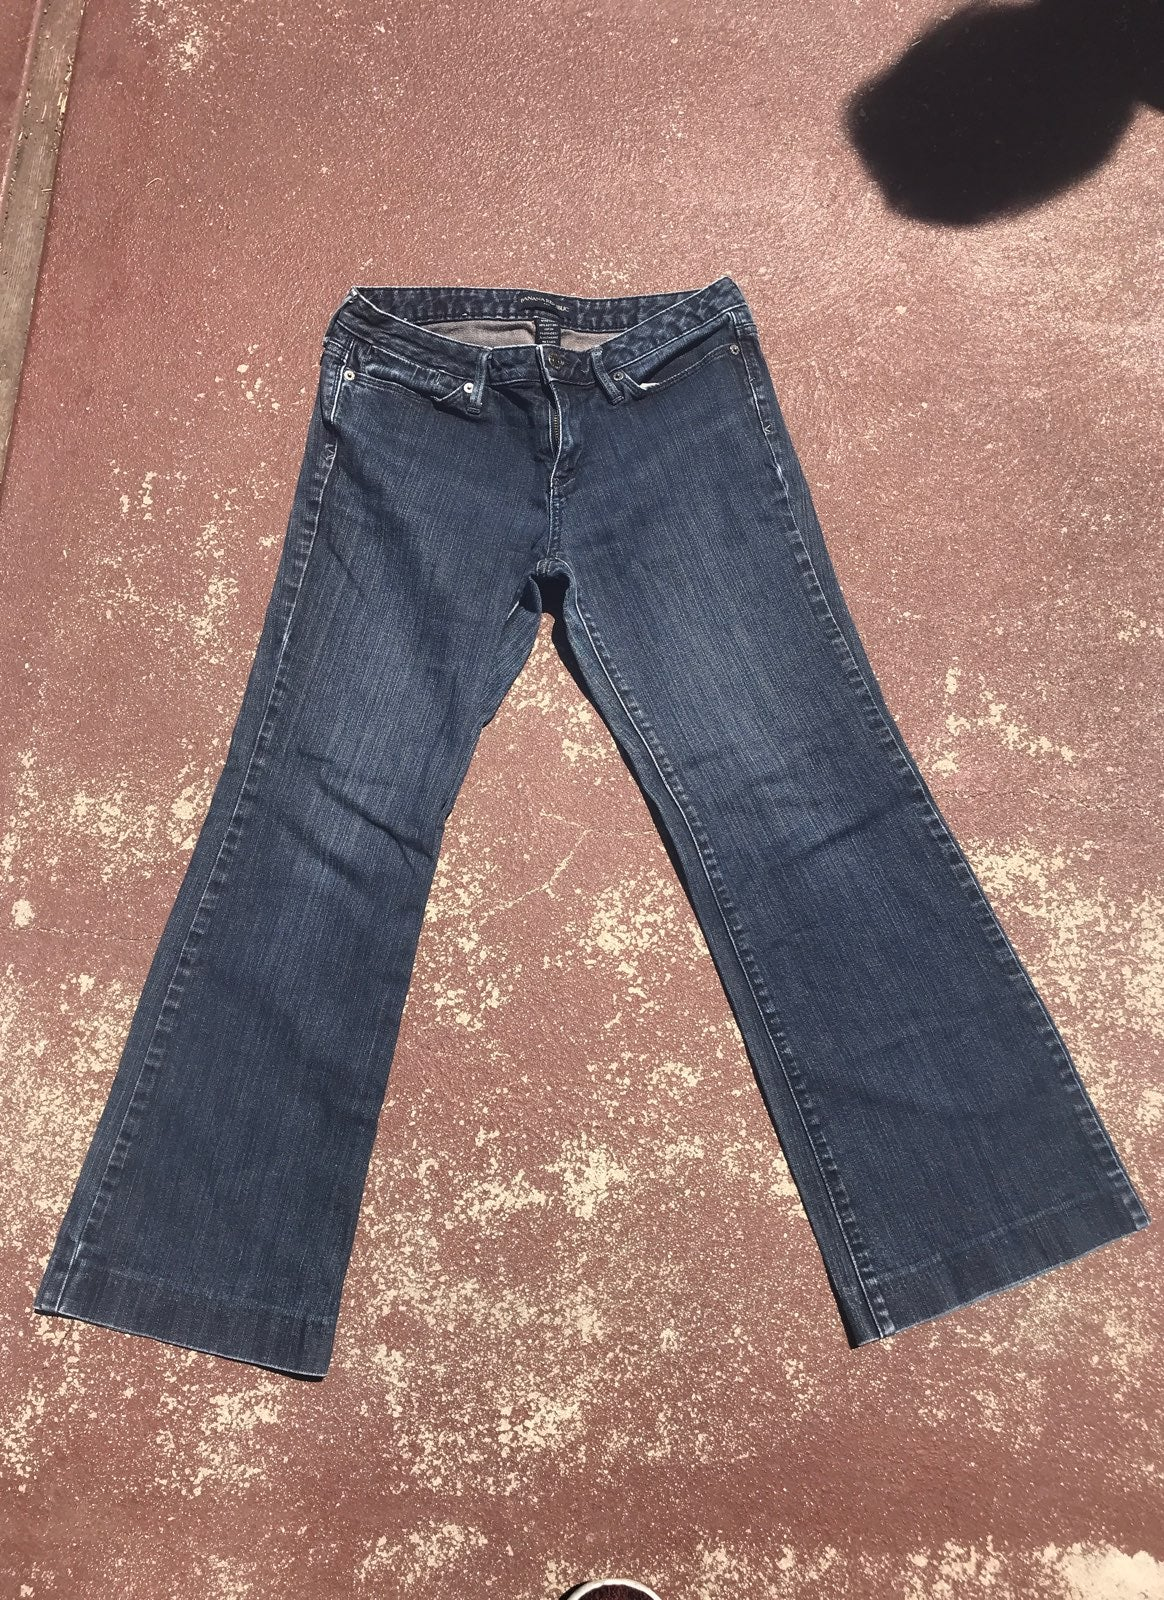 Banana republic women's jeans size 6